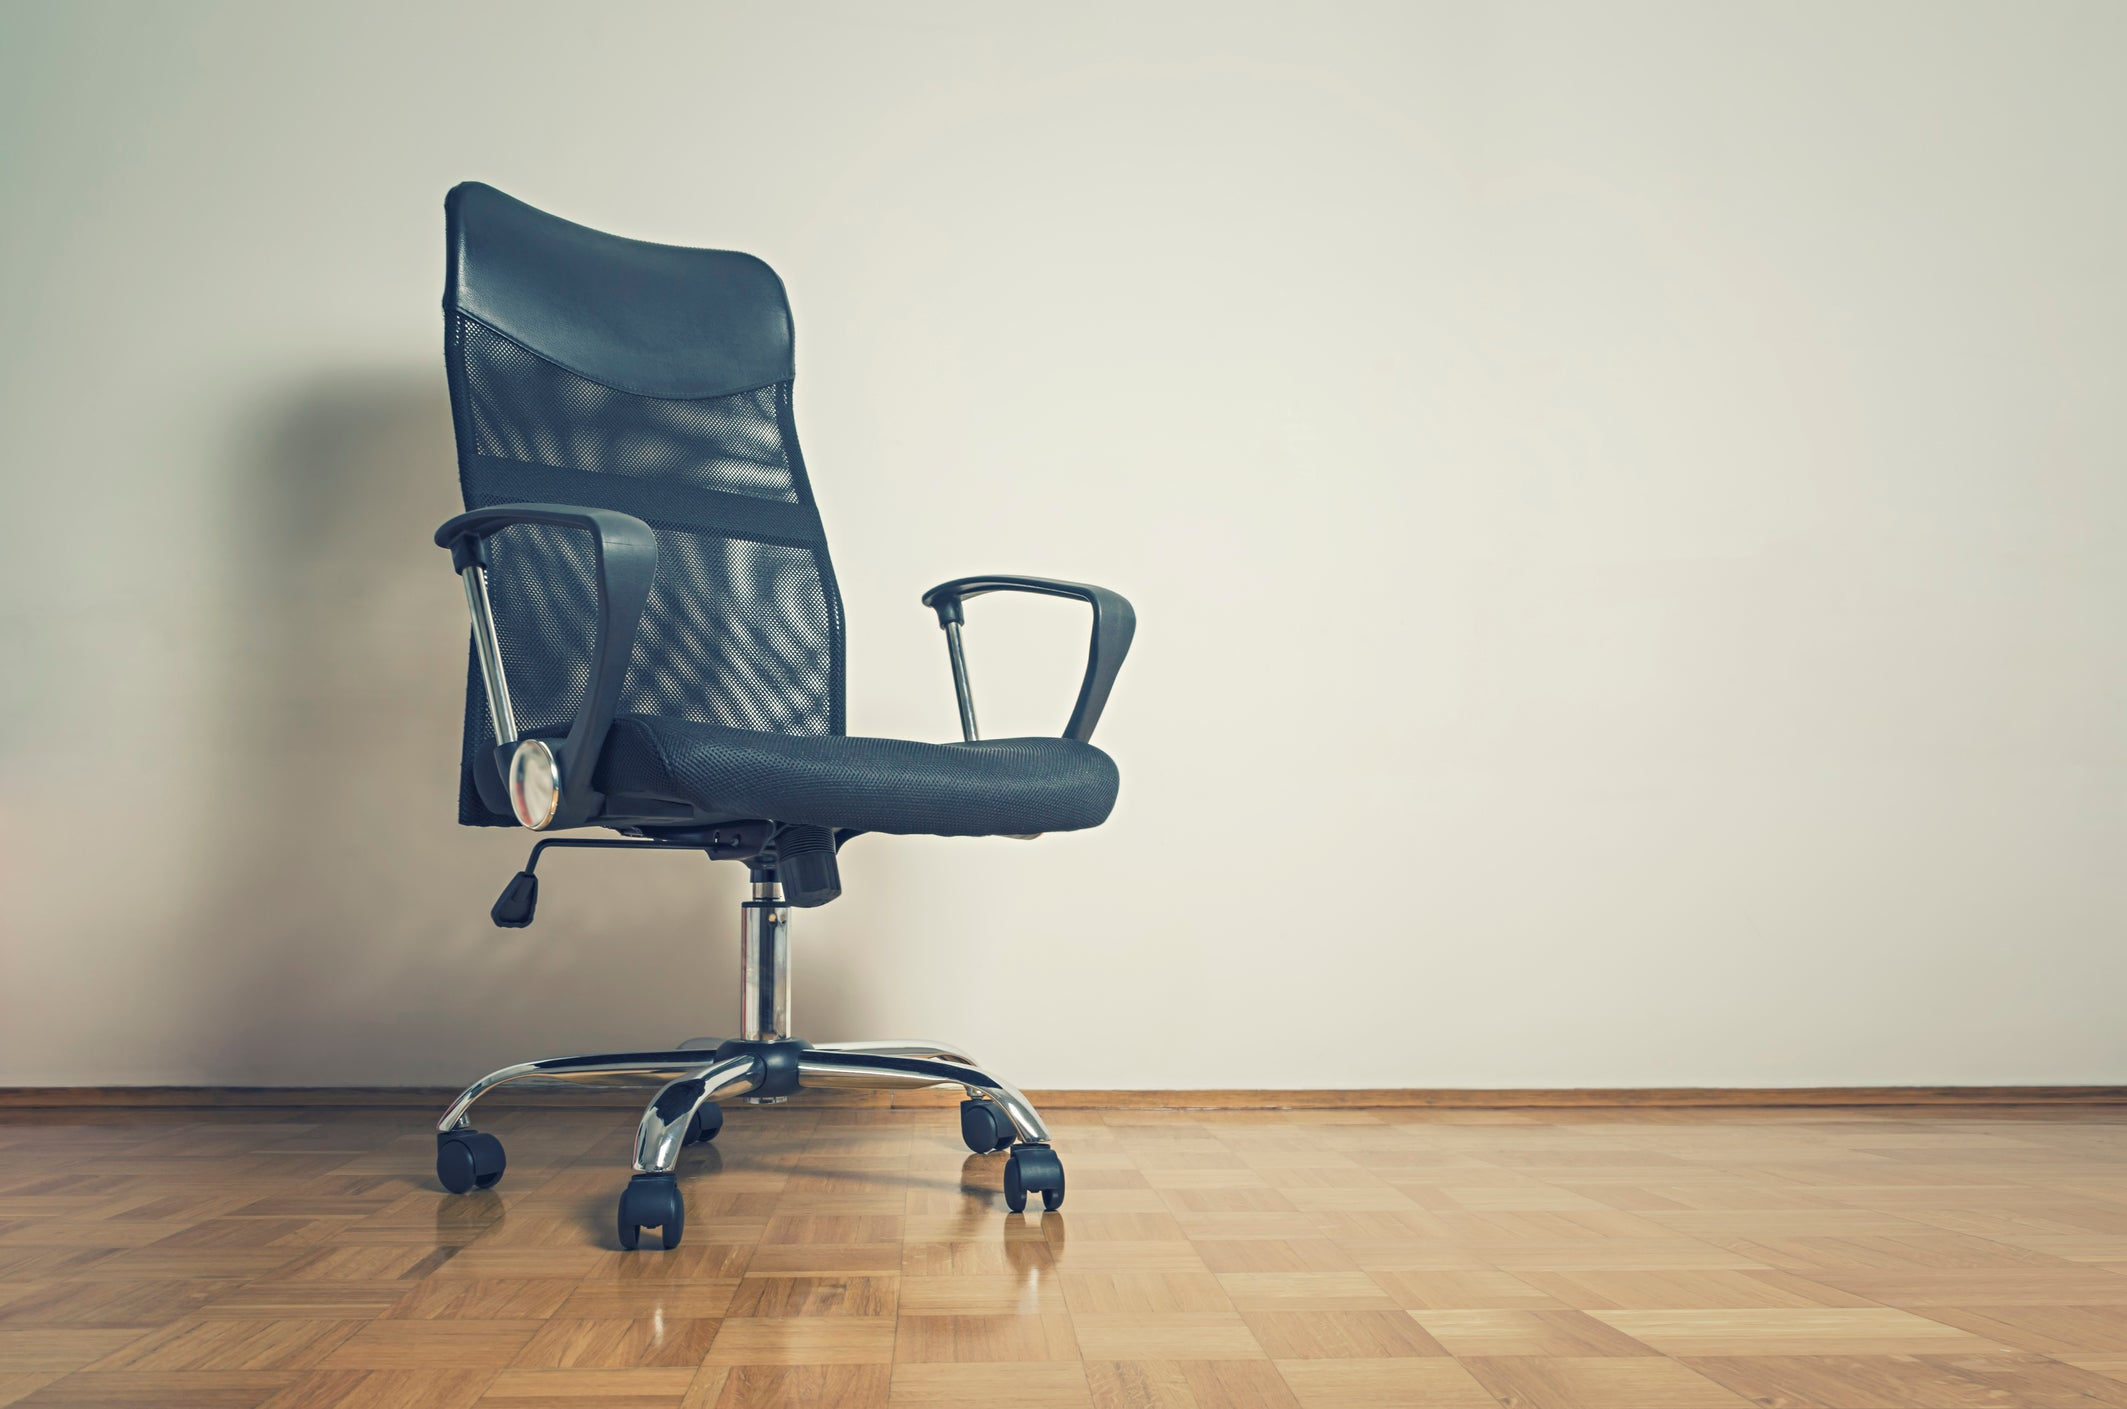 7 Best Office Chairs To Improve Your Posture While Working From Home Indy100